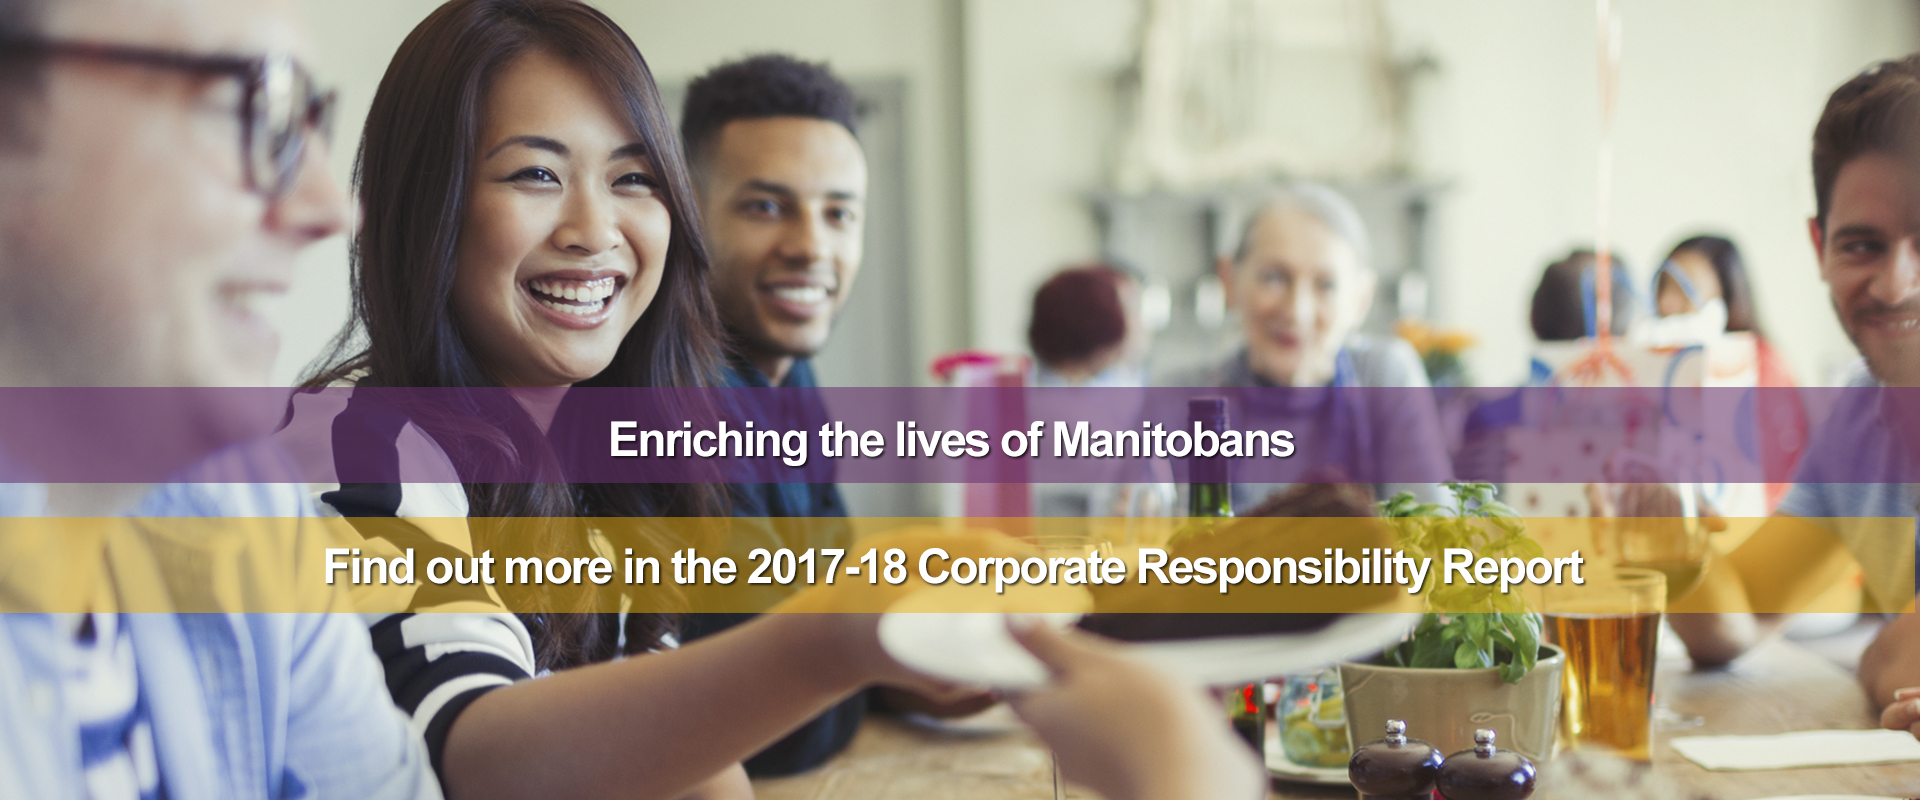 2017-18 Corporate Responsibility Report